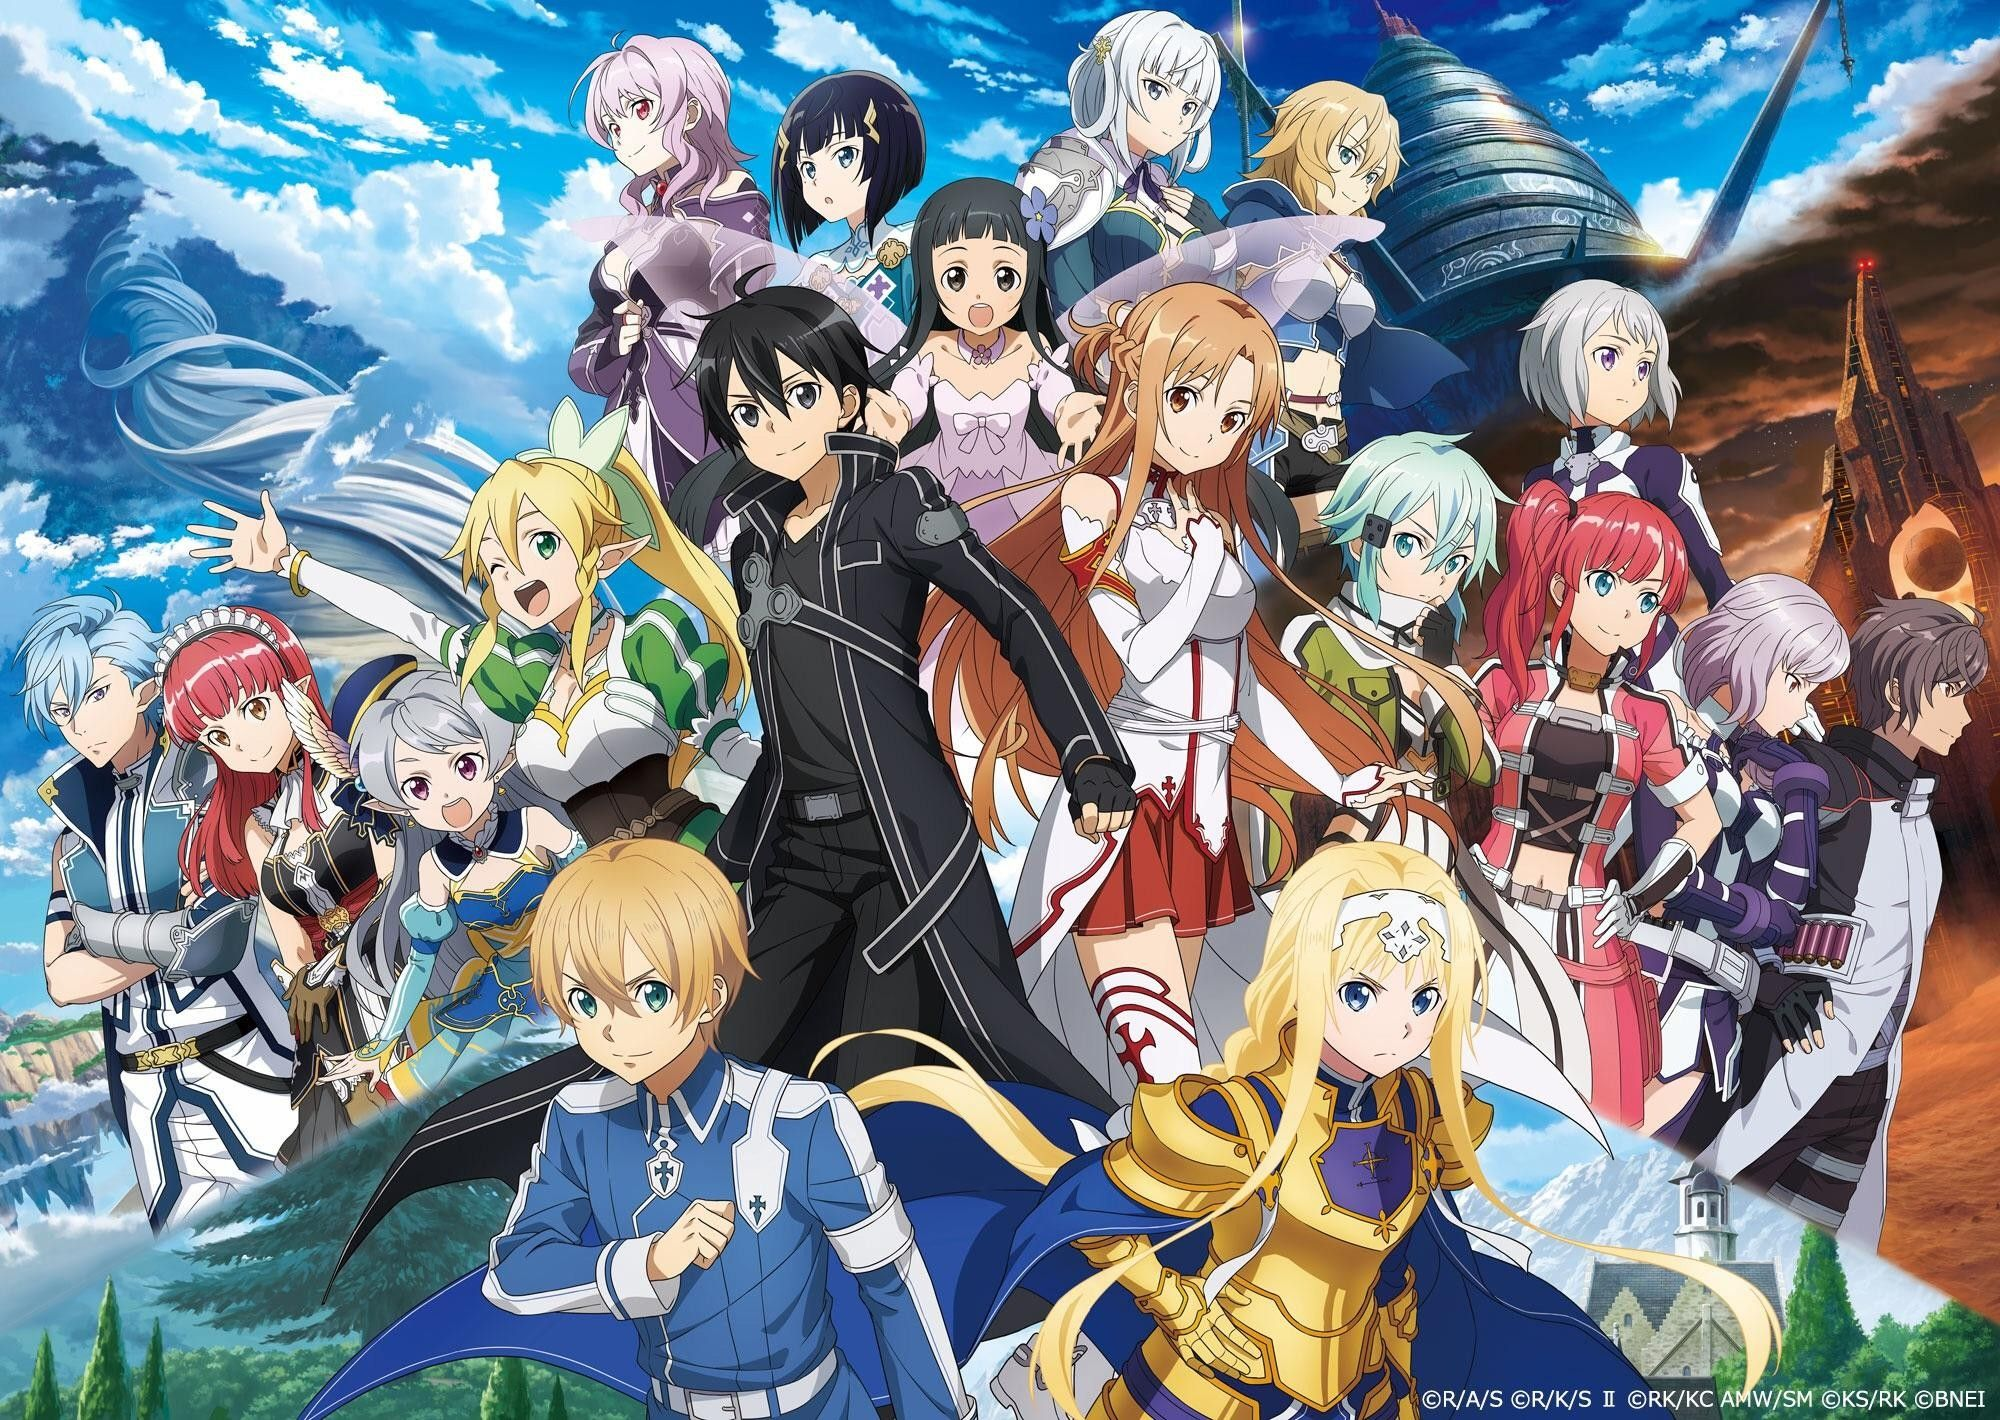 Pin by Julian on Geek Sword art online wallpaper, Sword